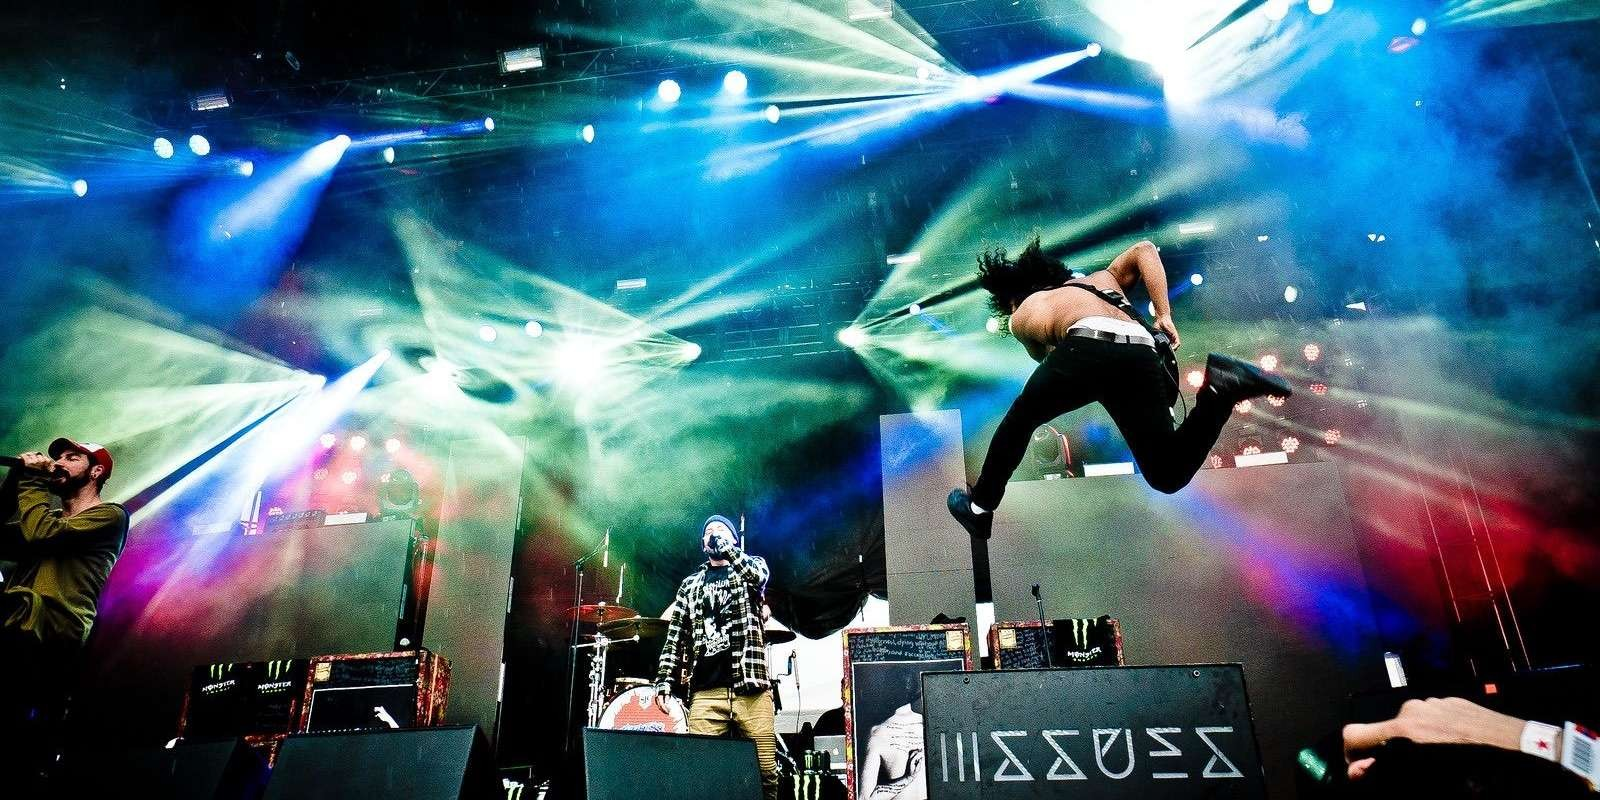 Issues performing live on stage at rock on the range festival with excellent light show